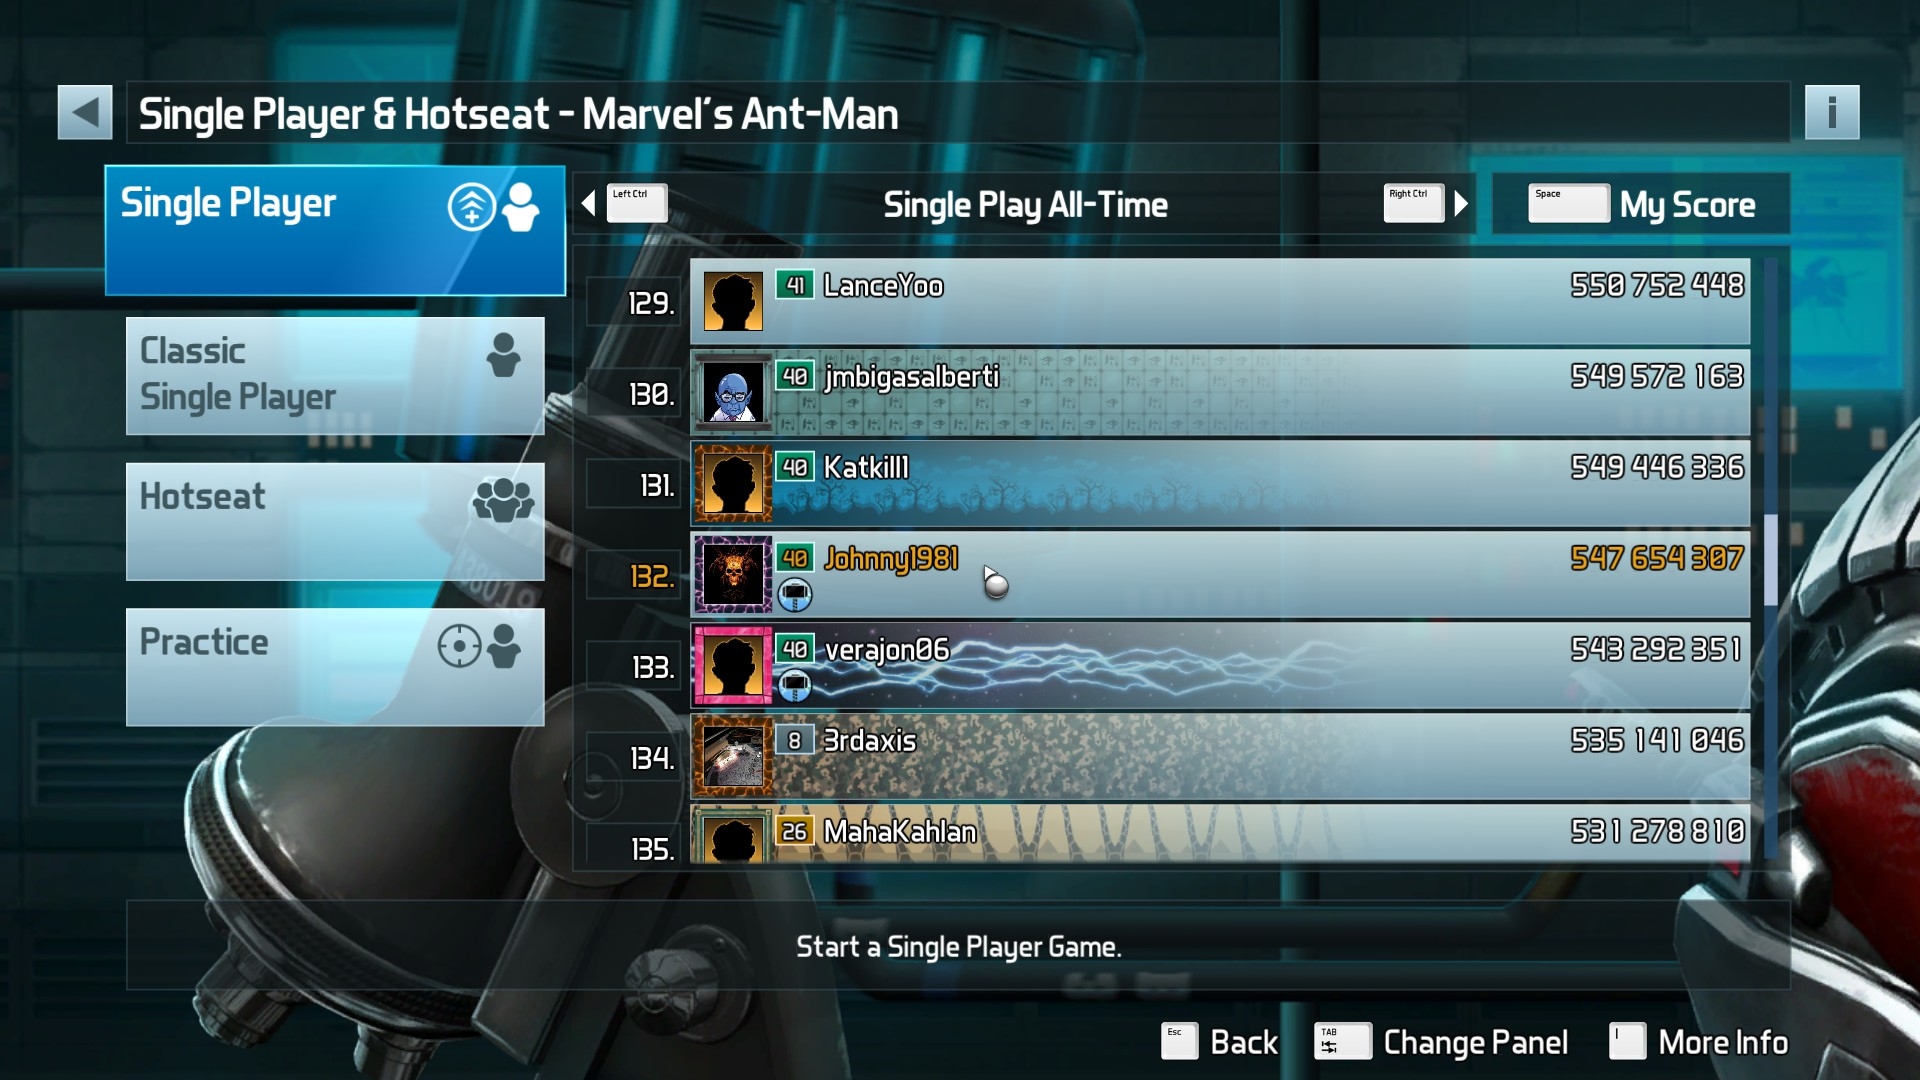 Johnny1981: Pinball FX3: Marvel's Ant-Man (PC) 547,654,307 points on 2018-04-10 14:21:43